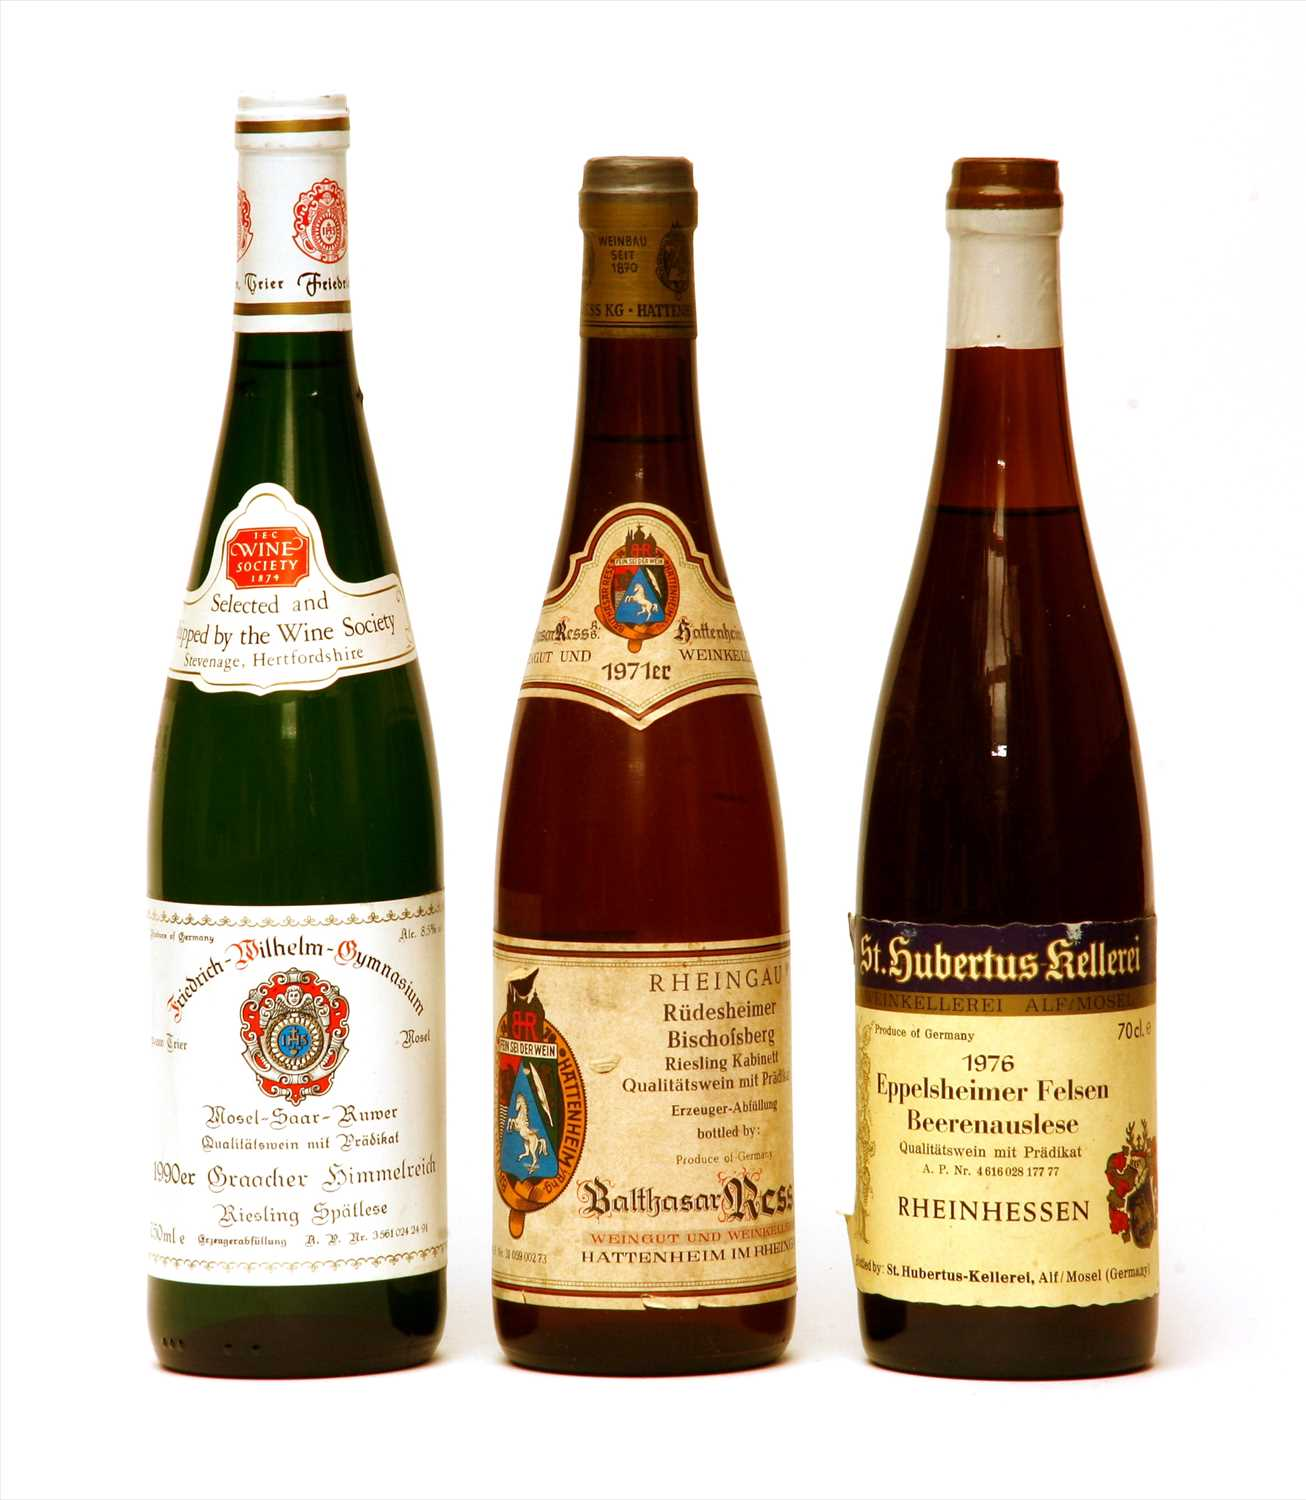 Lot 18-Miscellaneous: Balthasar Ress, 1971; St. Hubertus-Kellerei and another, three bottles in total